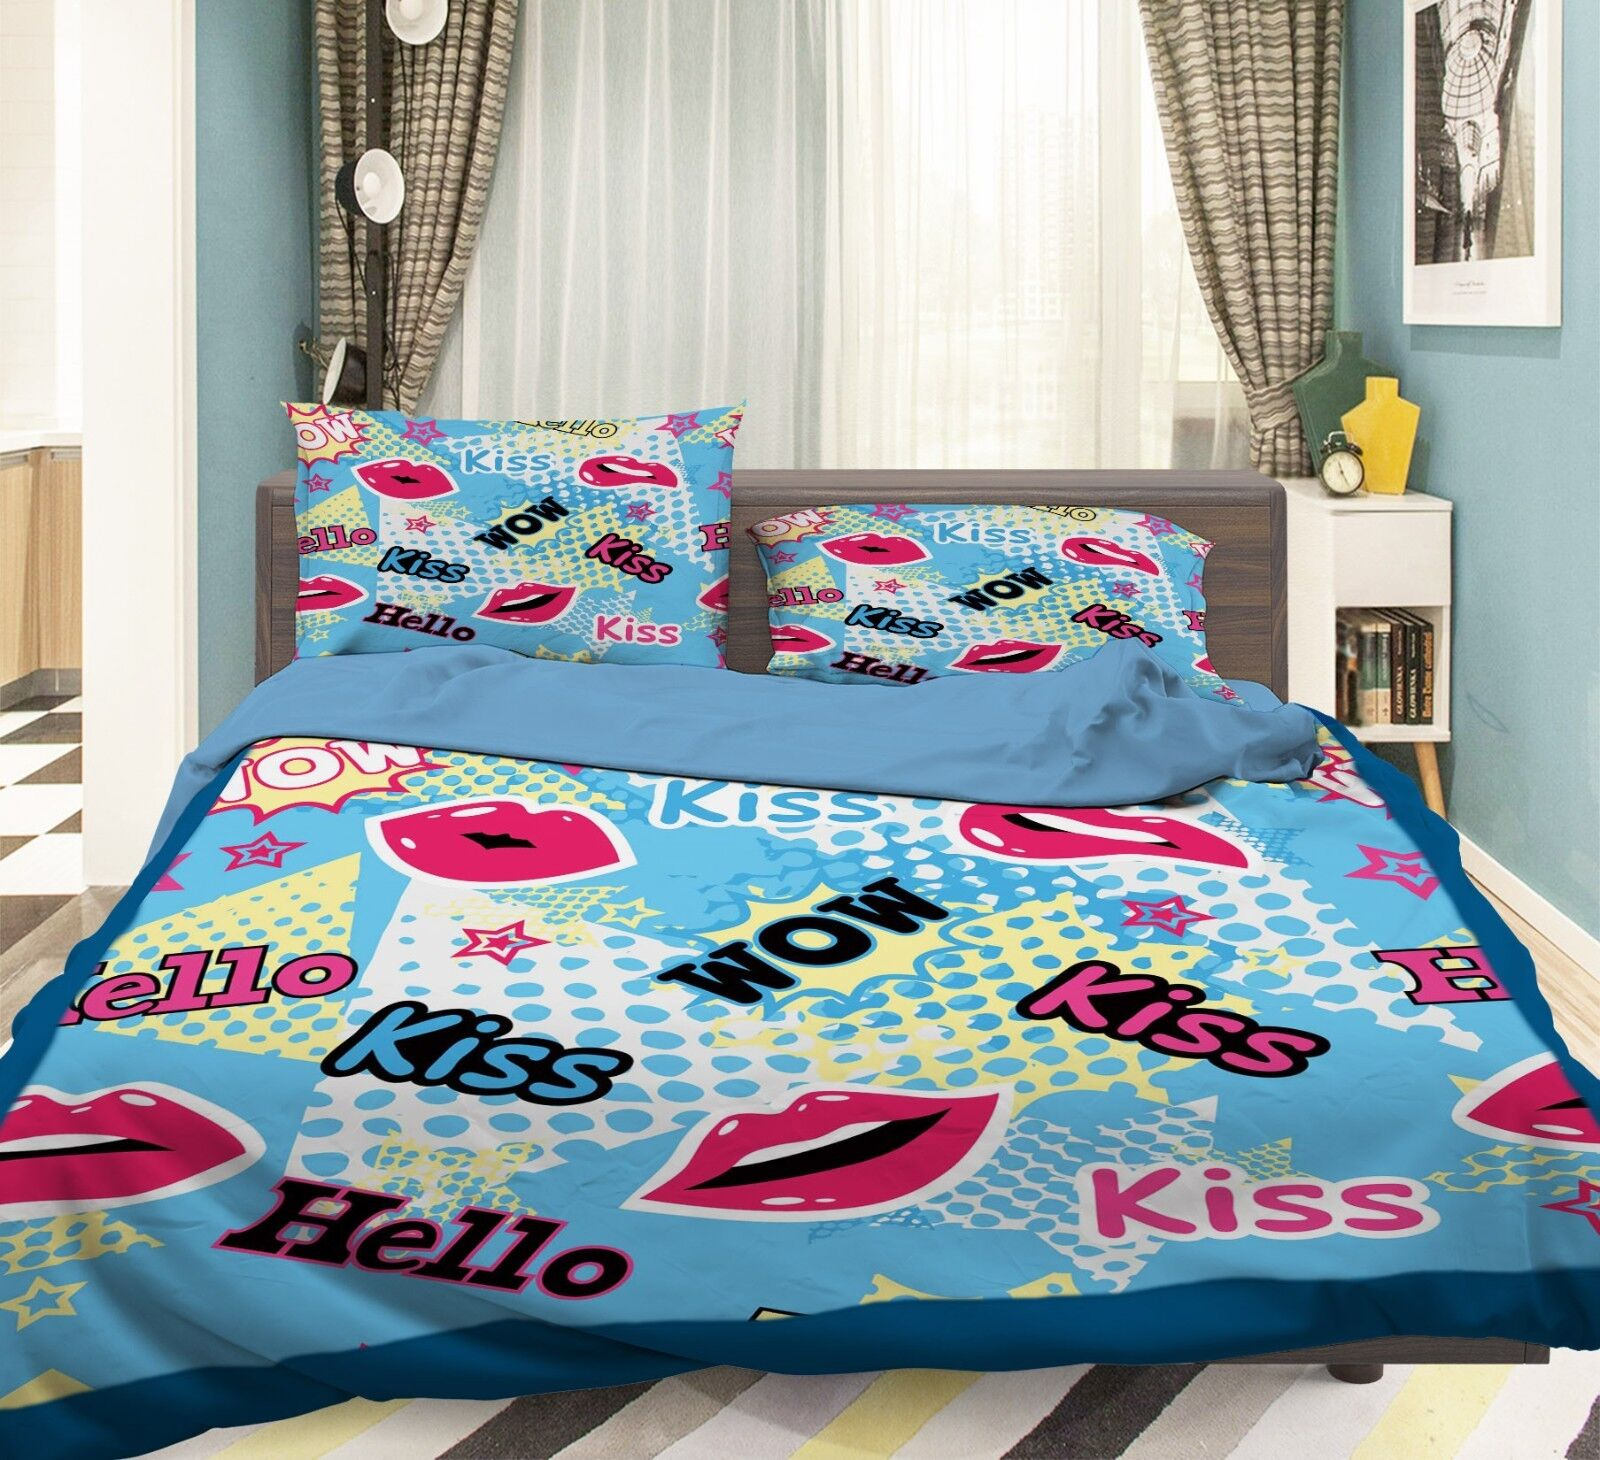 3D rosso Lips 370 Bed Pillowcases Quilt Duvet Cover Set Single Queen King Dimensione AU